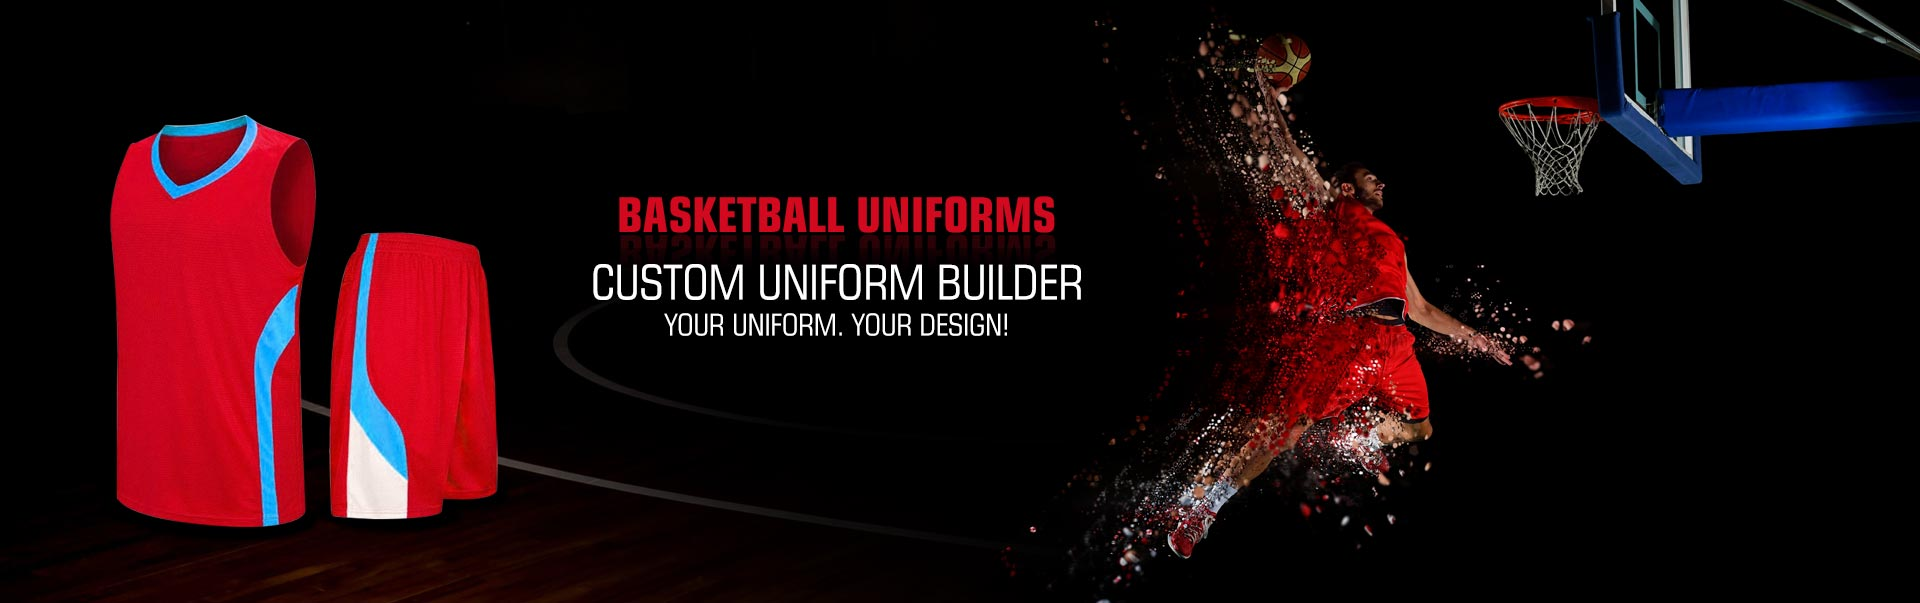 Basketball Uniforms Wholesaler, Suppliers in Pittsburgh